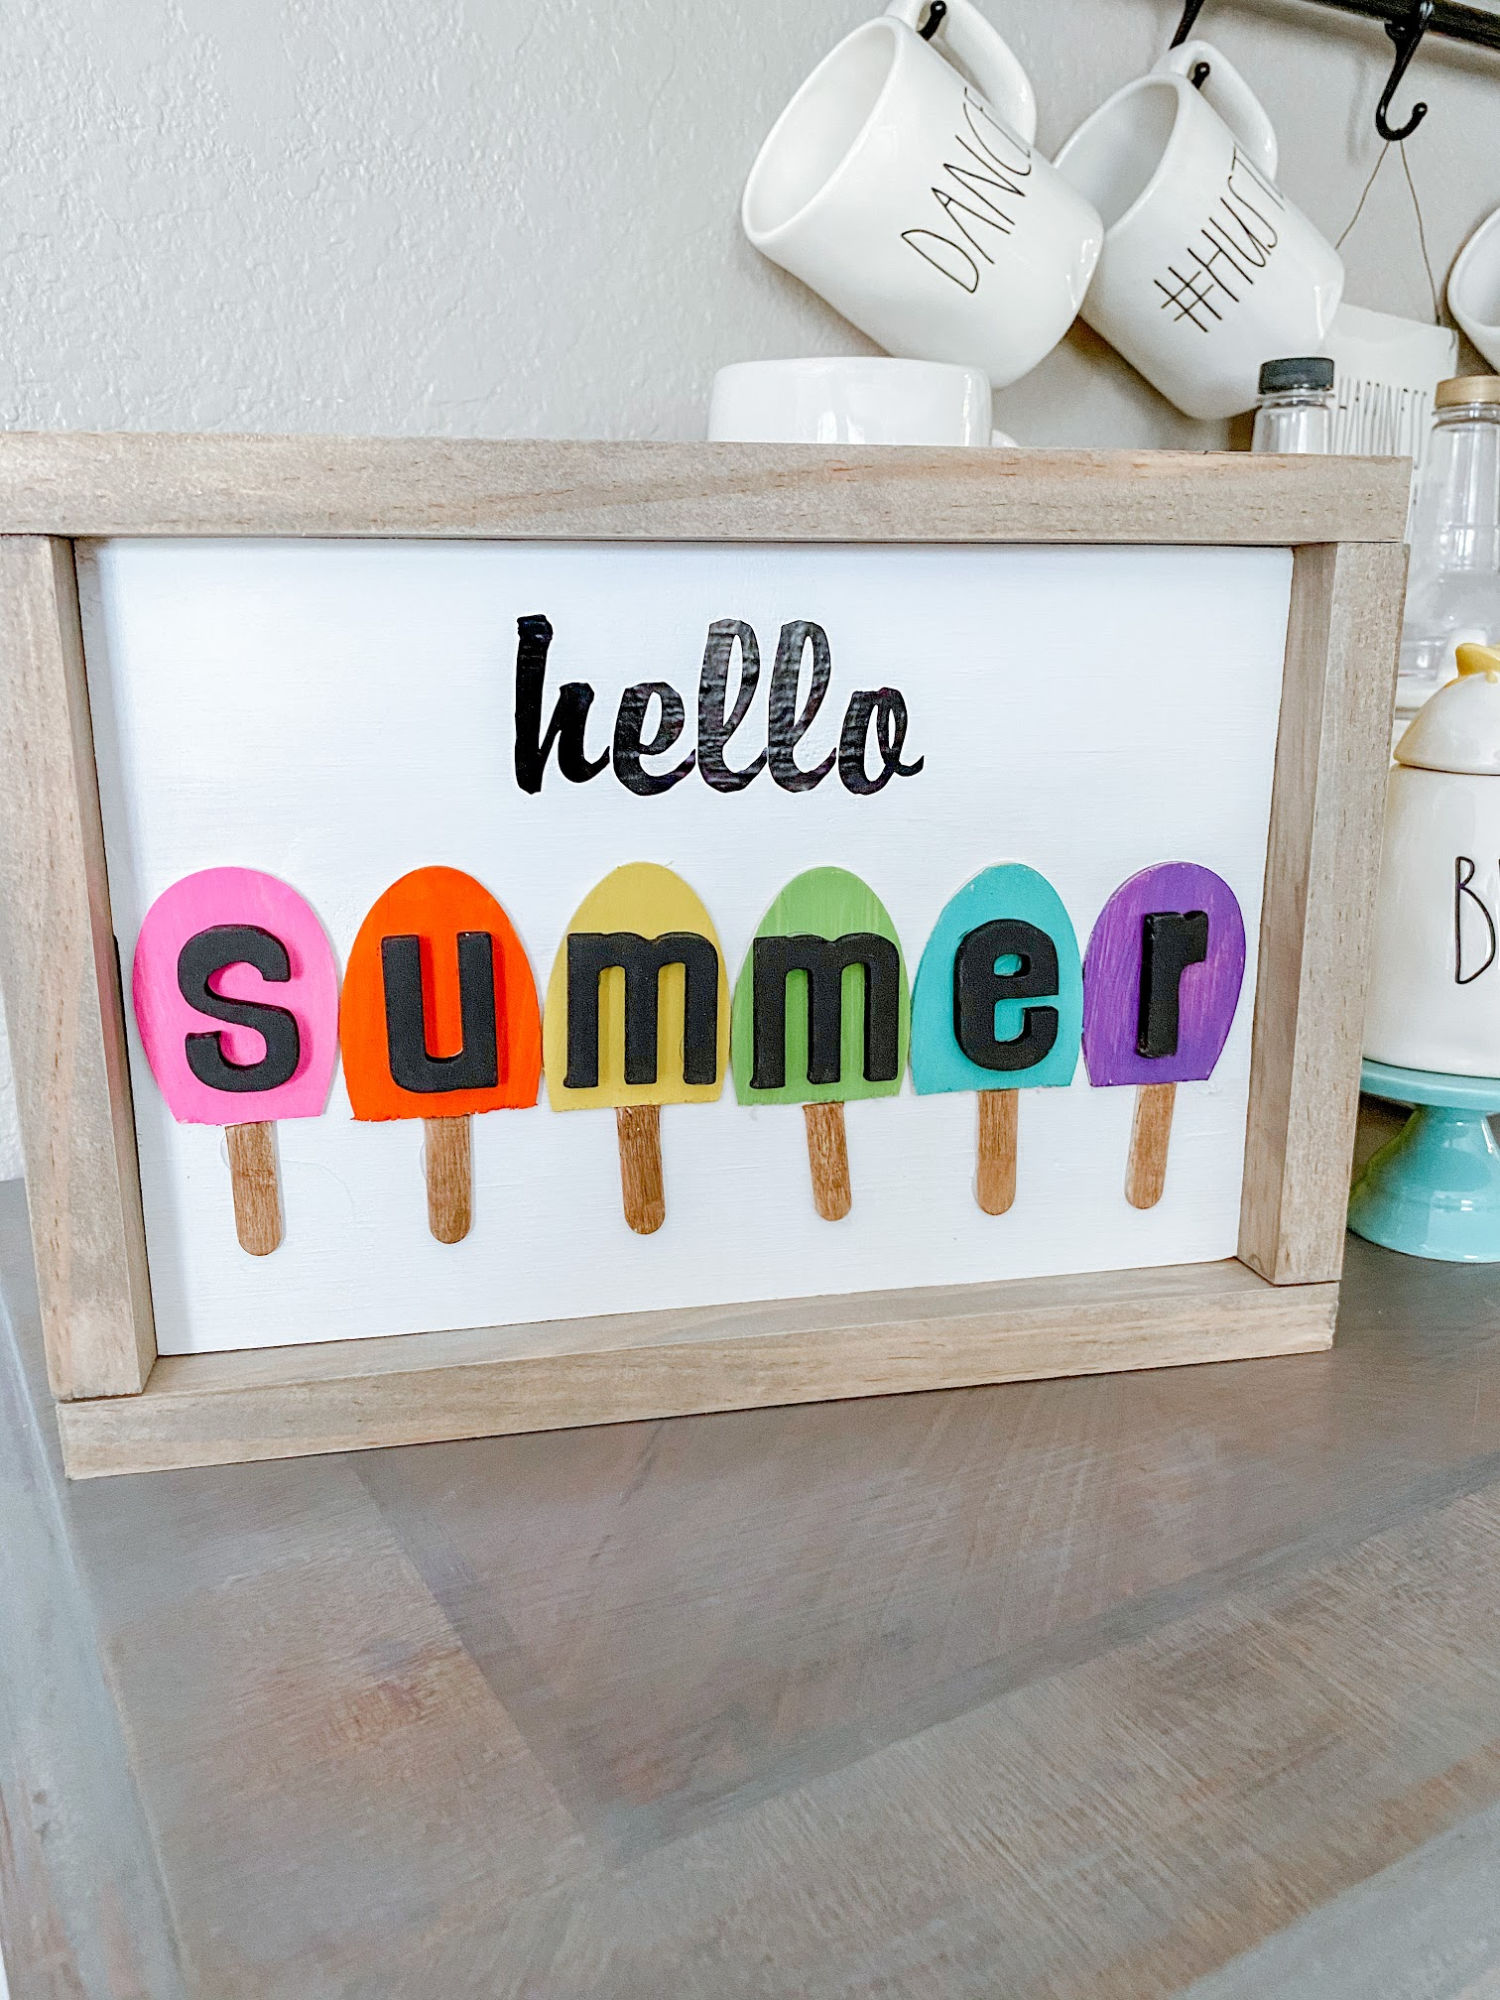 Create this cute DIY Hello Summer sign using paints, wood, and popsicle sticks. This project is both fun and easy to make for your home decor this summer. #summerdecor #homedecor #summer #diysign #woodsigns #diywoodsign